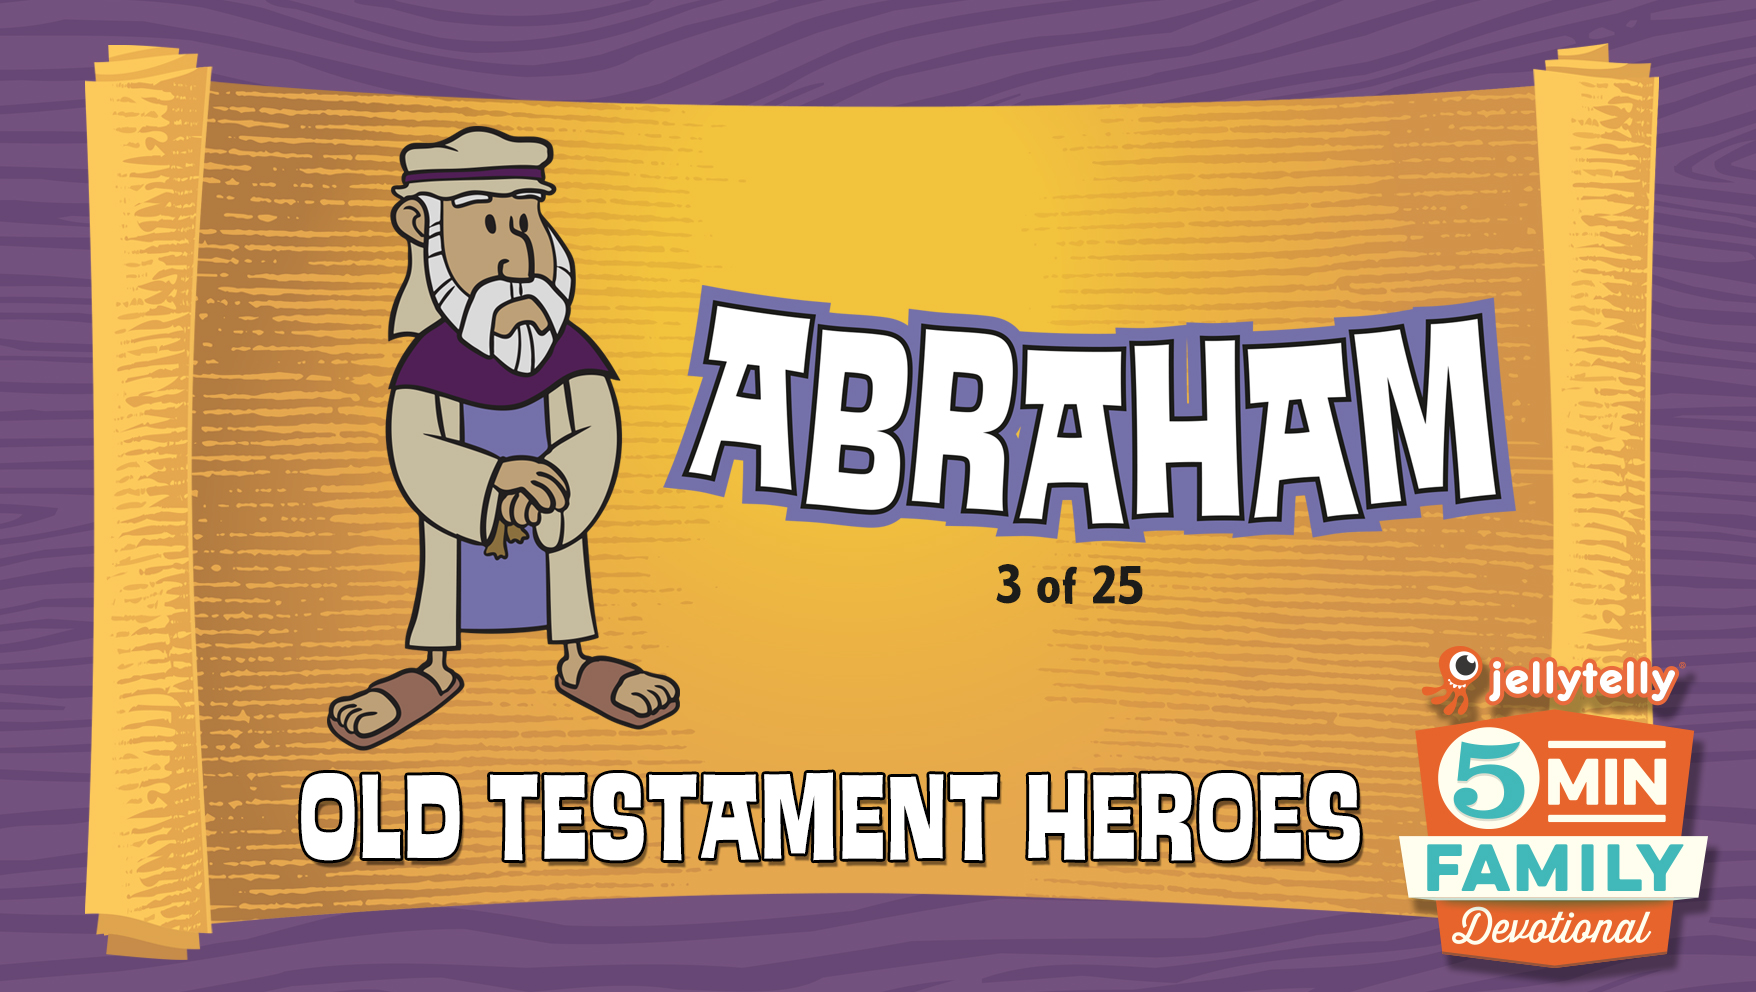 Abraham: Old Testament Heroes - 5 Minute Family Devotional